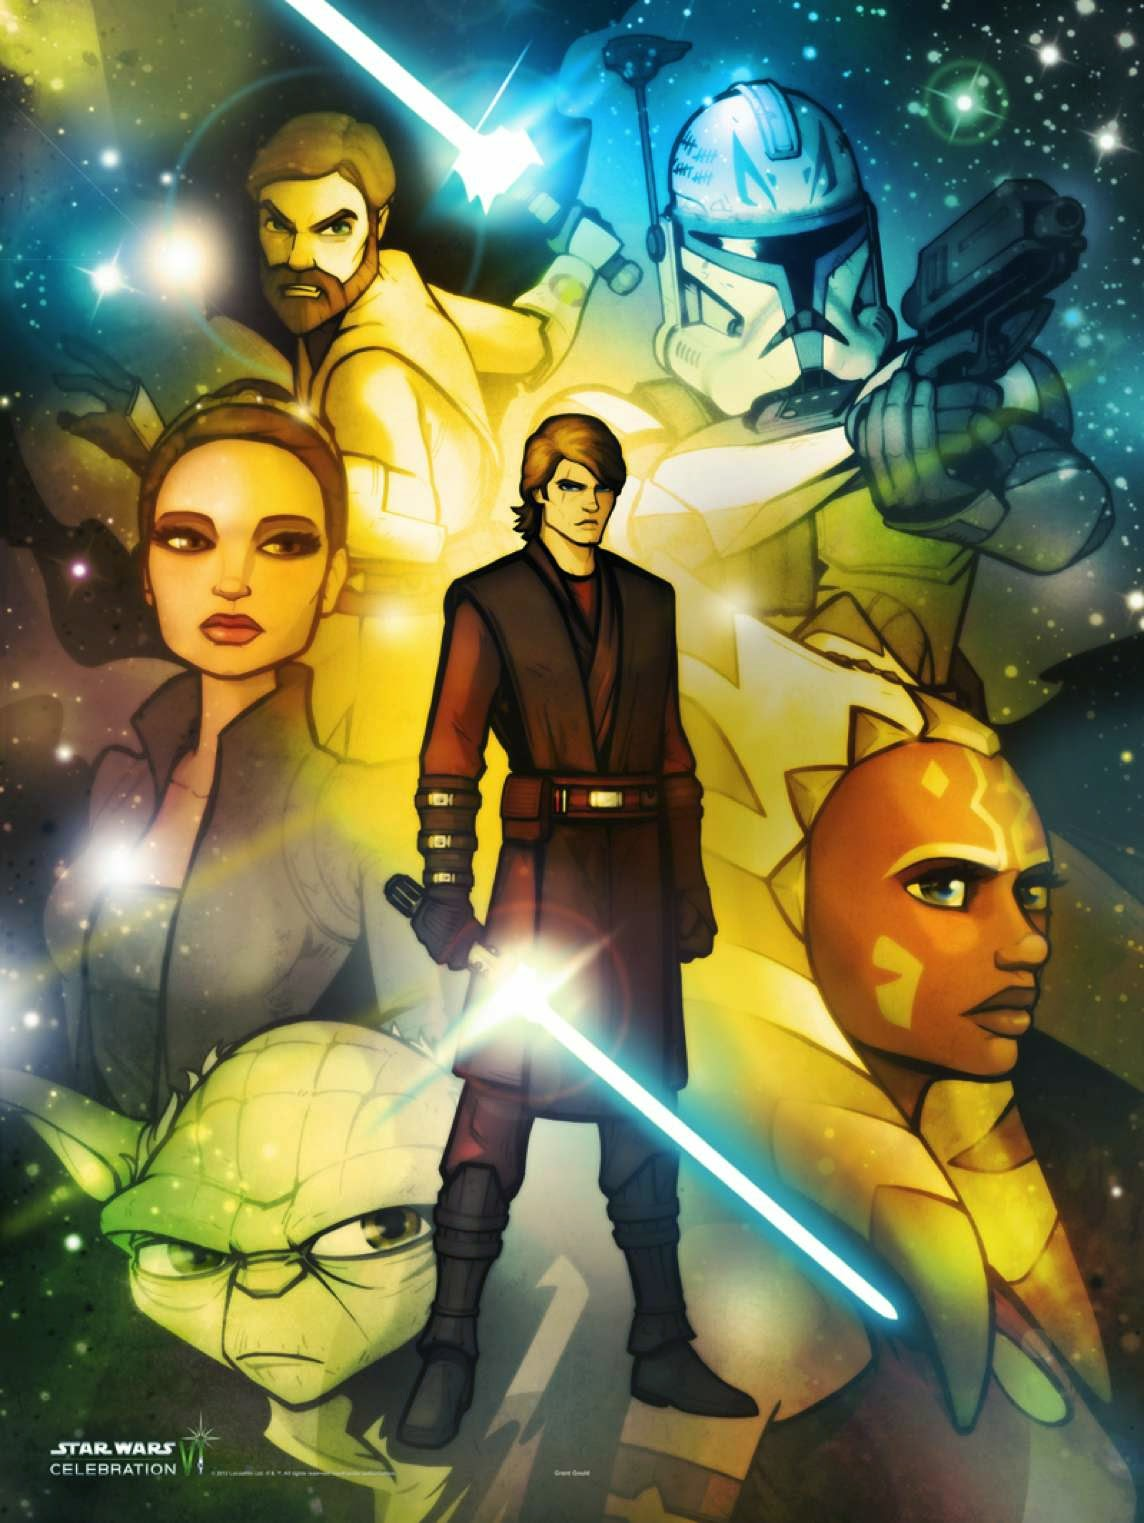 Star wars the clone wars season 6 star wars